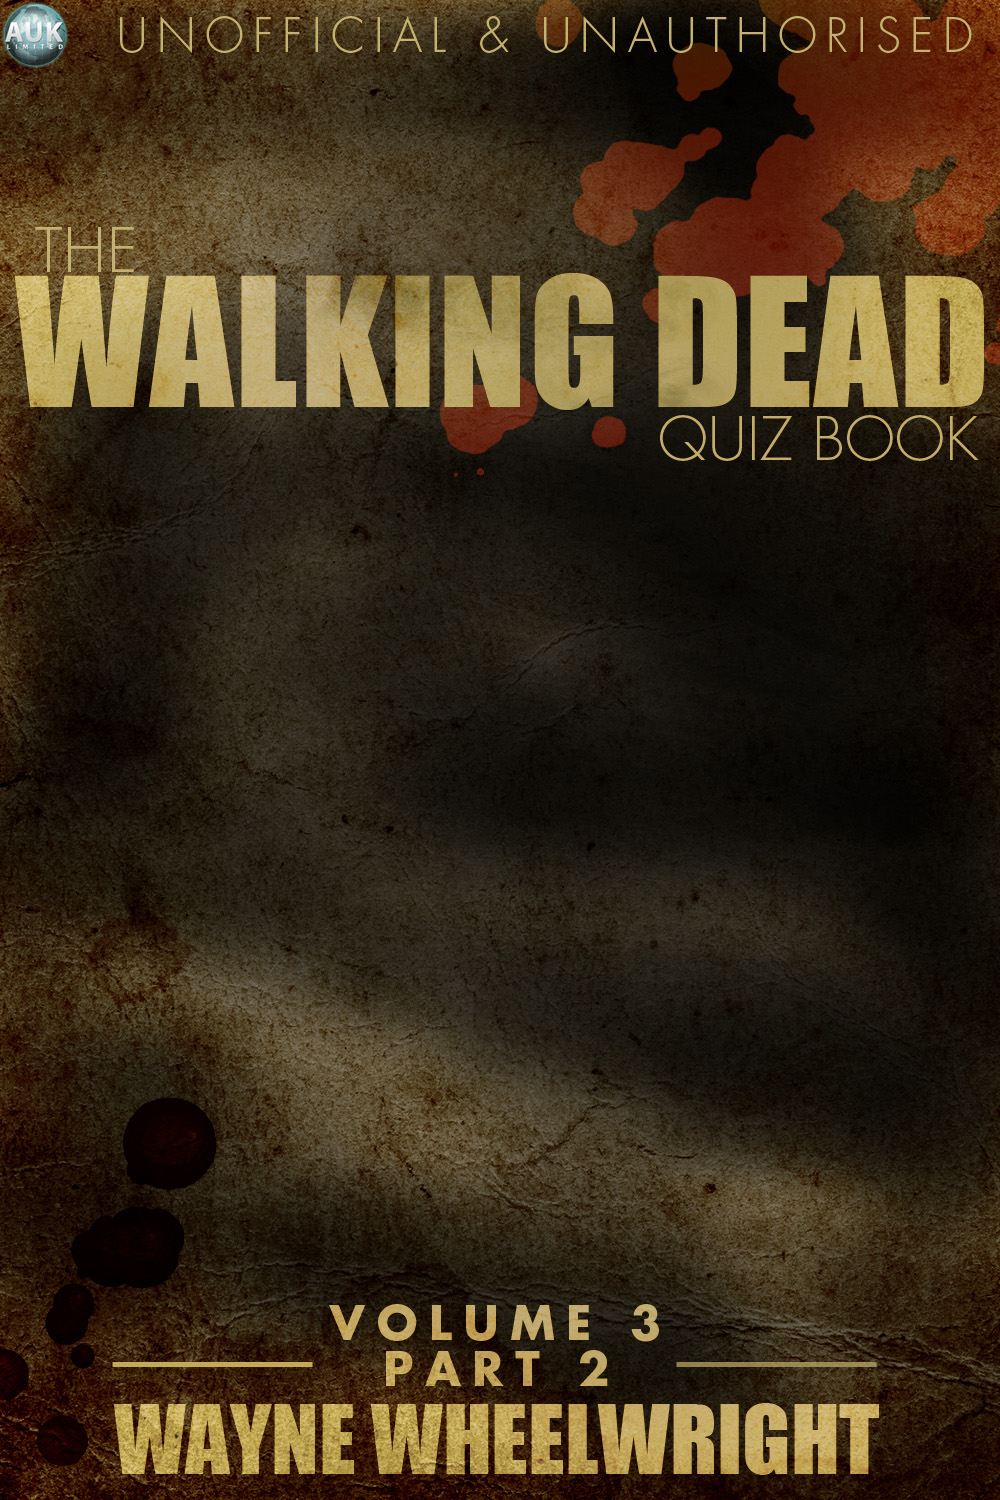 The Walking Dead Quiz Book Volume 3 Part 2